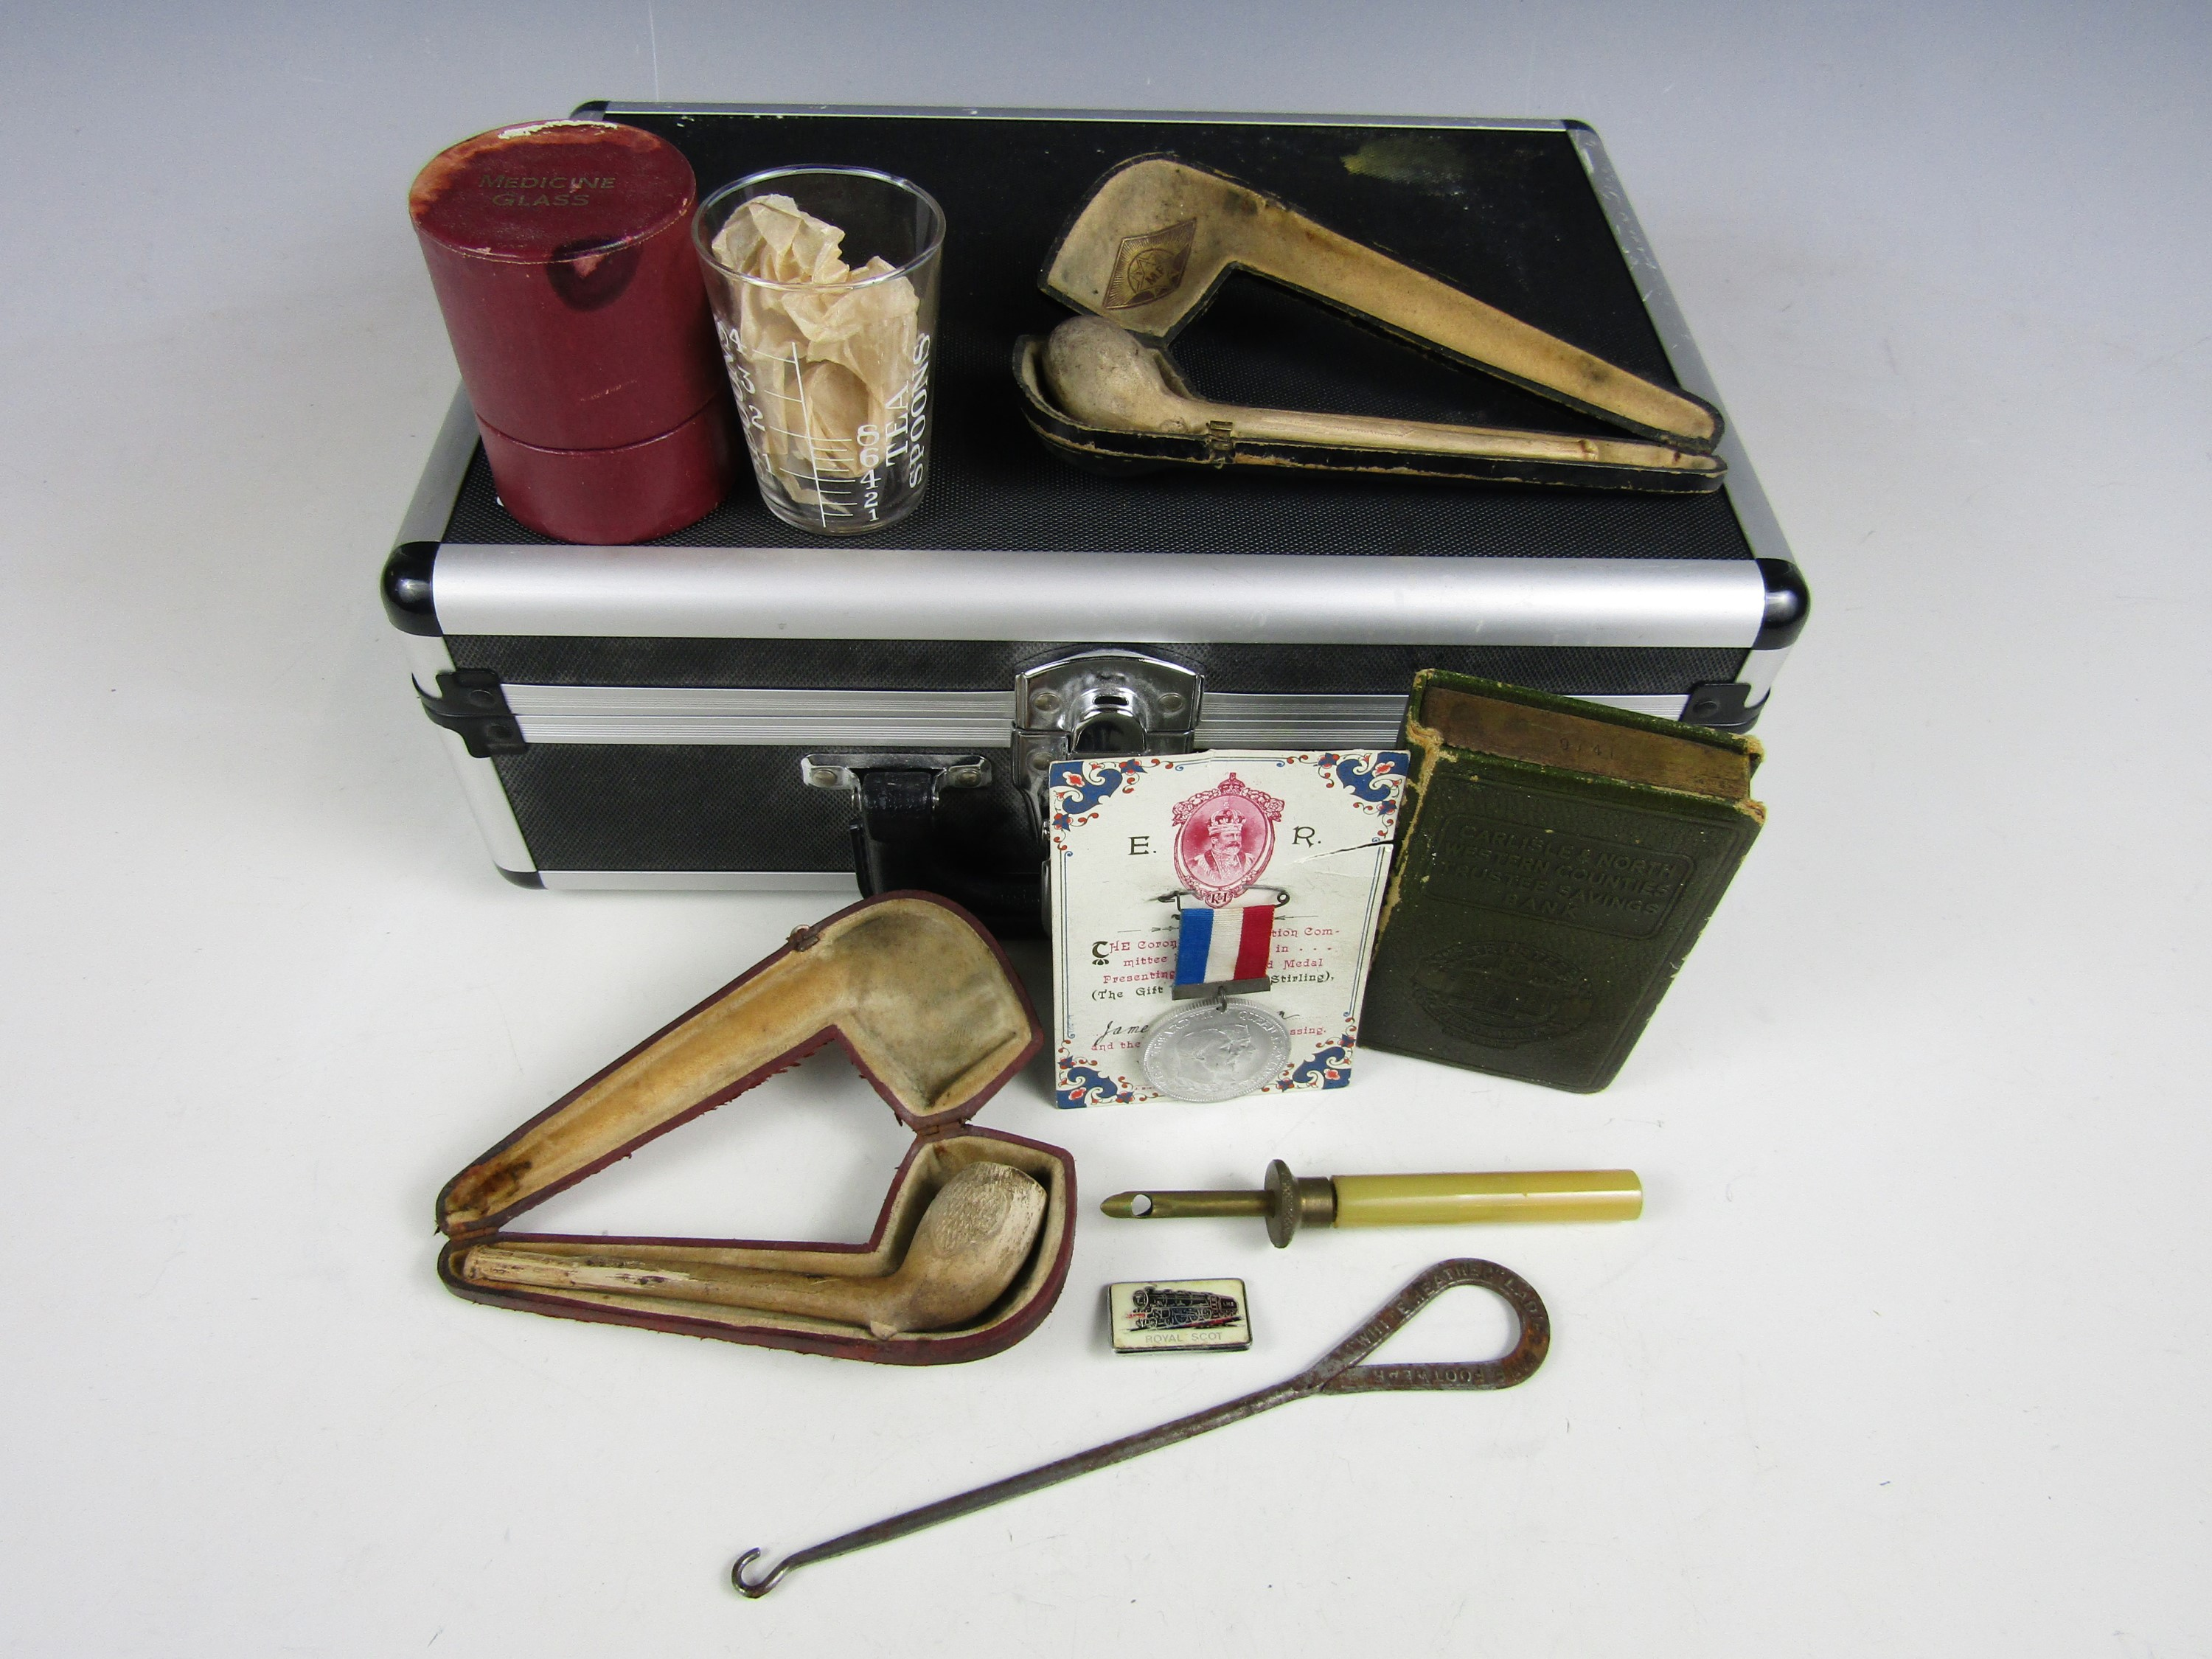 Lot 21 - Sundry collectors' items including a protector case, a vintage medicine glass and two meerschaum